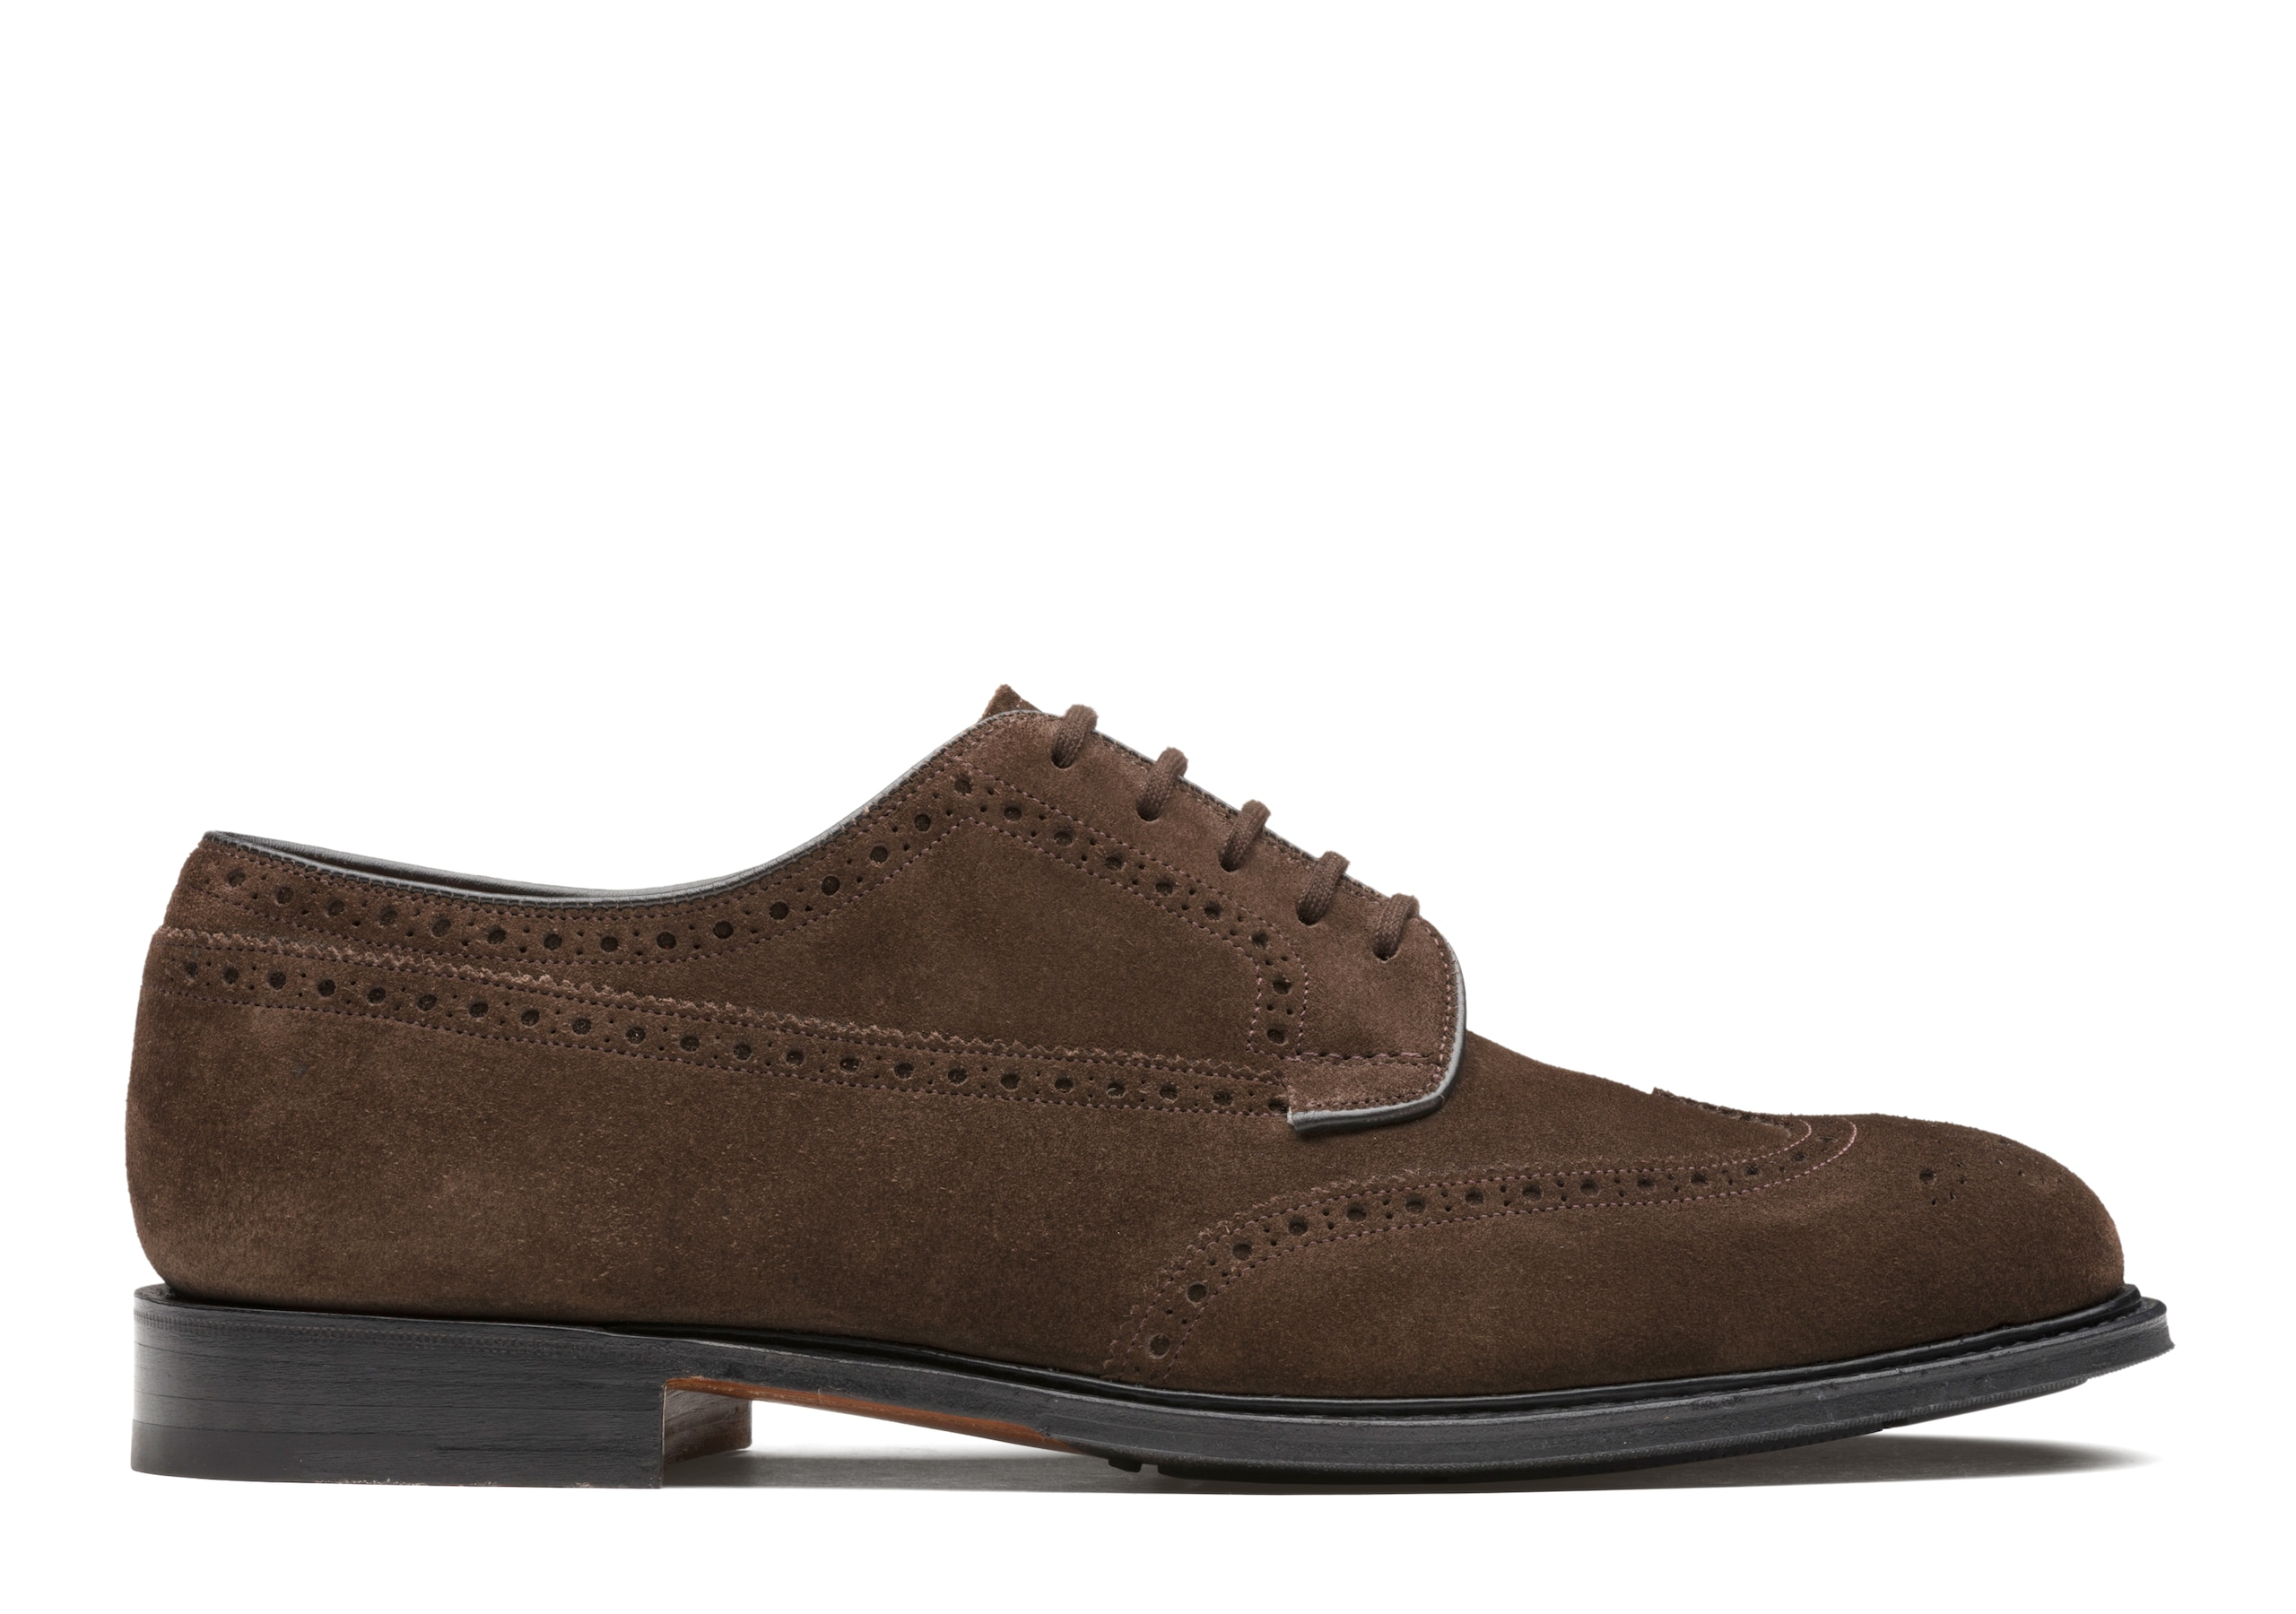 Thickwood Church's Derby Brogue in Pelle Scamosciata Marrone